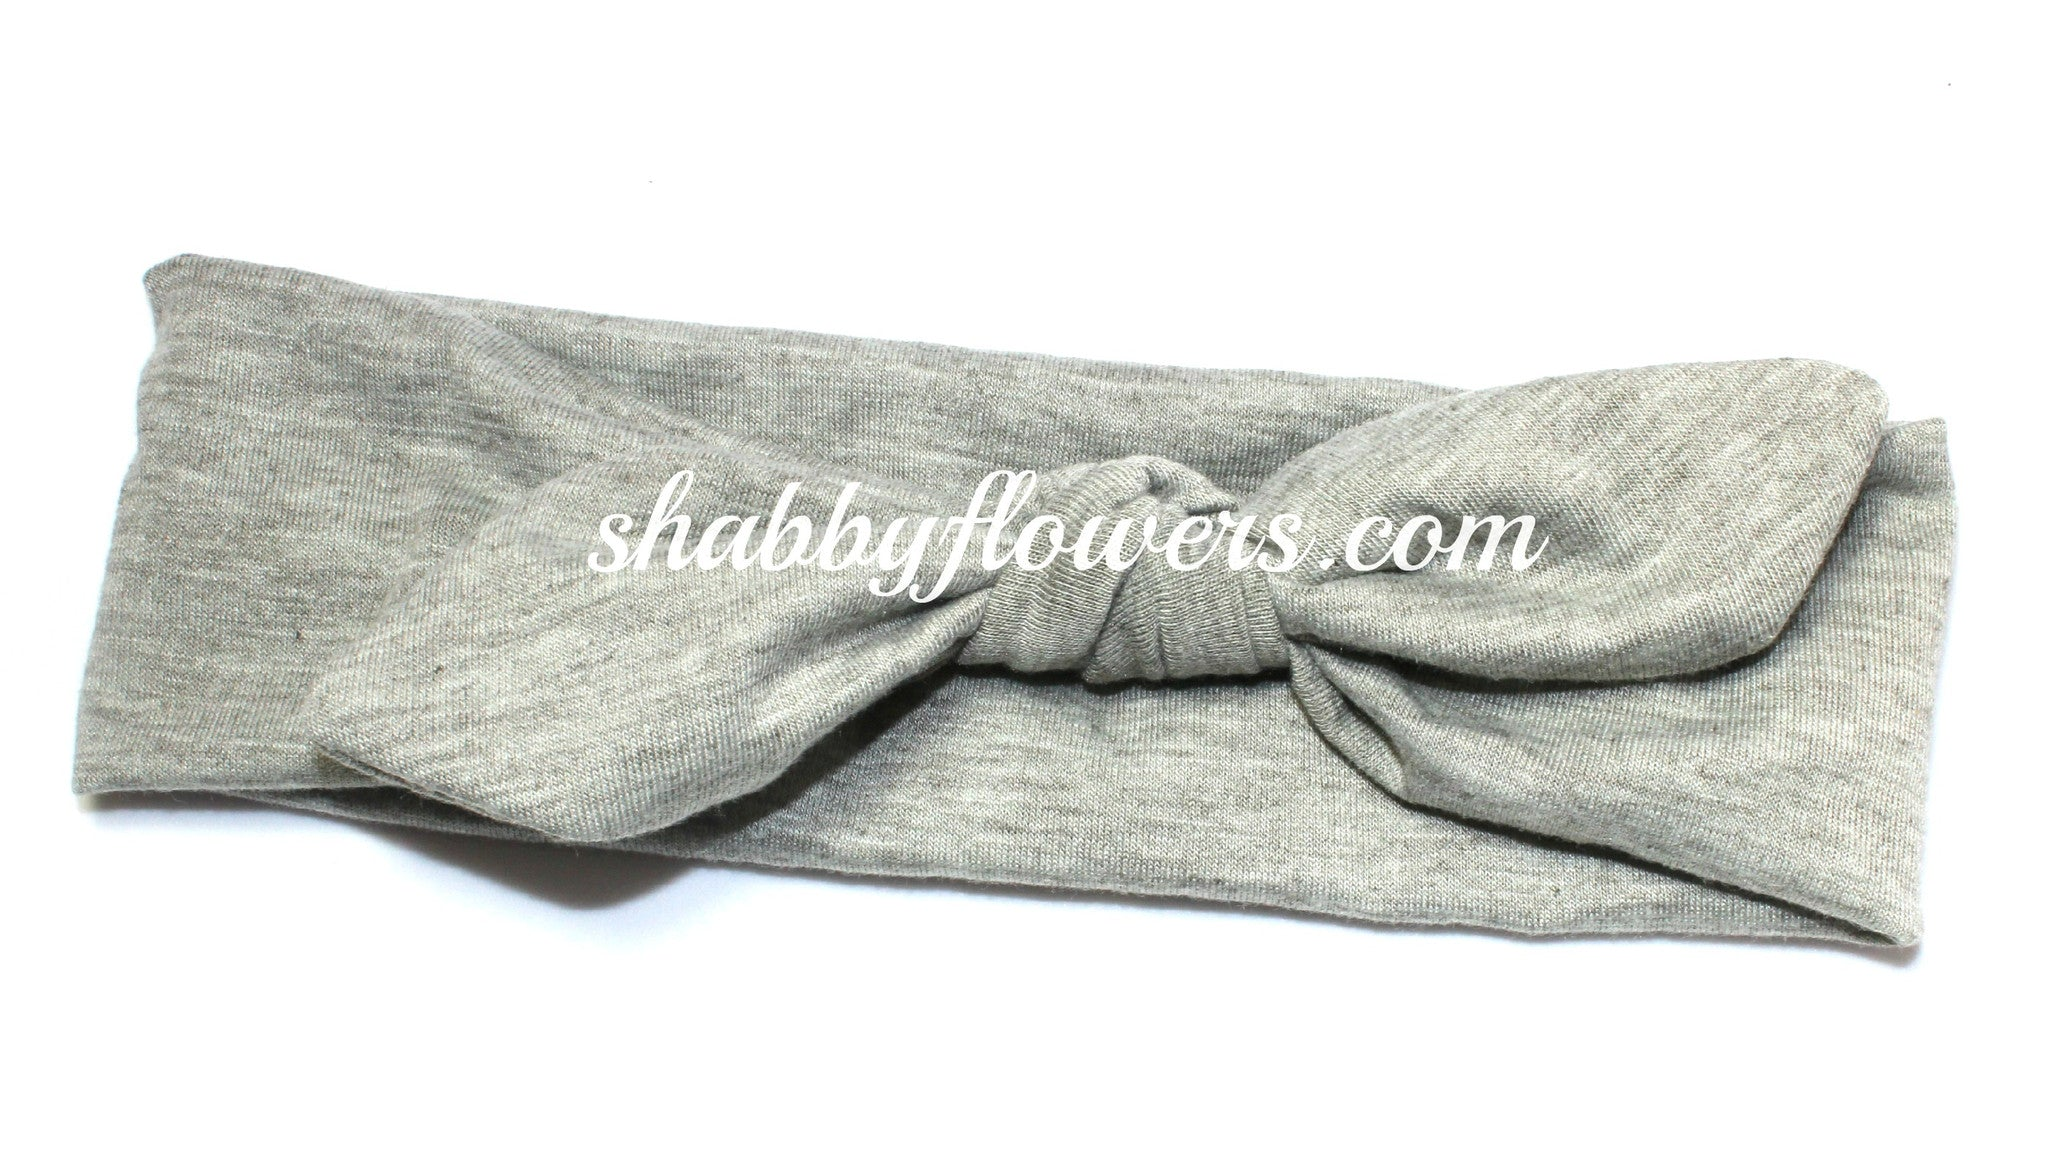 Knot Headband in Gray - Regular - shabbyflowers.com